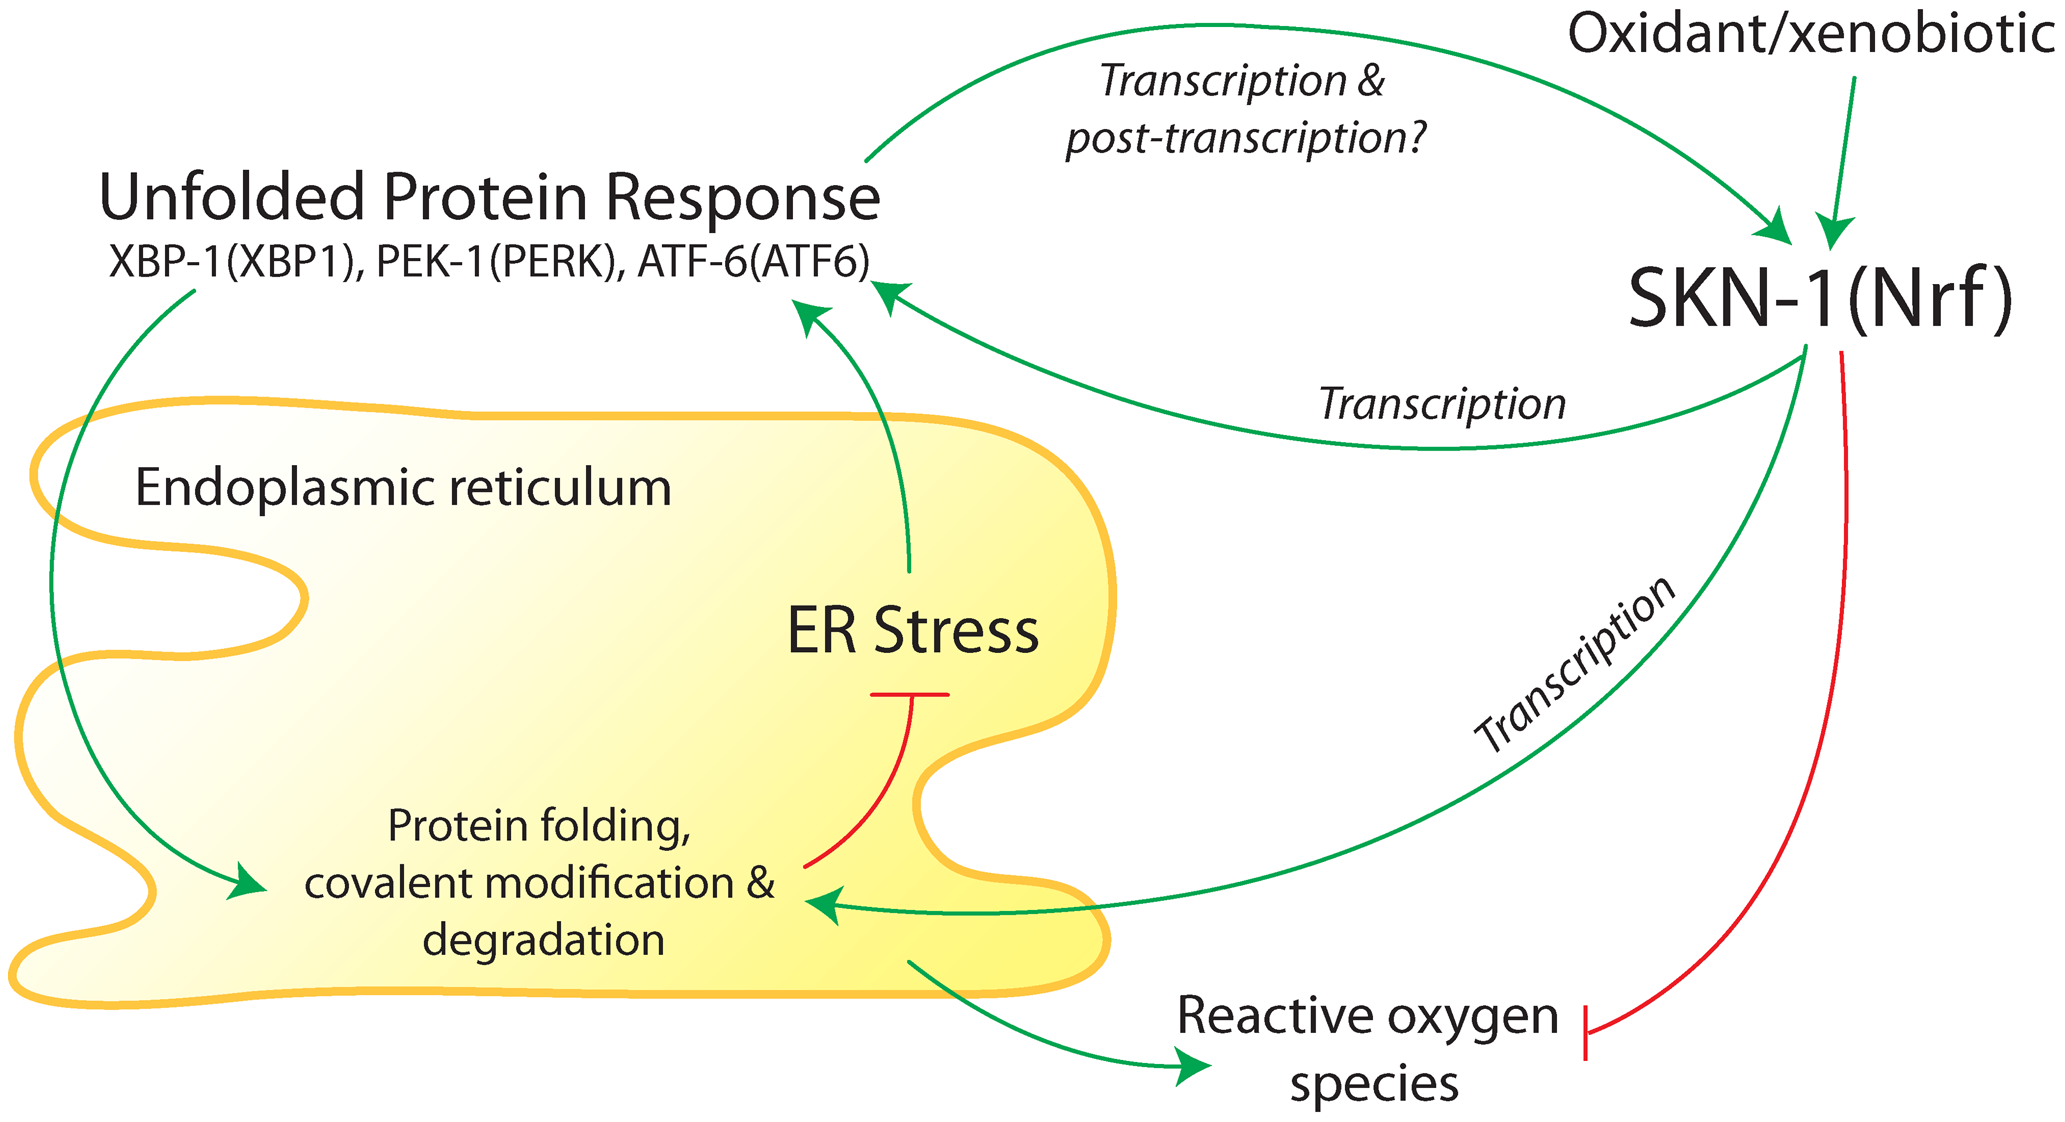 Summary of interactions between the endoplasmic reticulum (ER) unfolded protein response (UPR) and antioxidant/detoxification transcription factor SKN-1 in <i>C. elegans</i>.